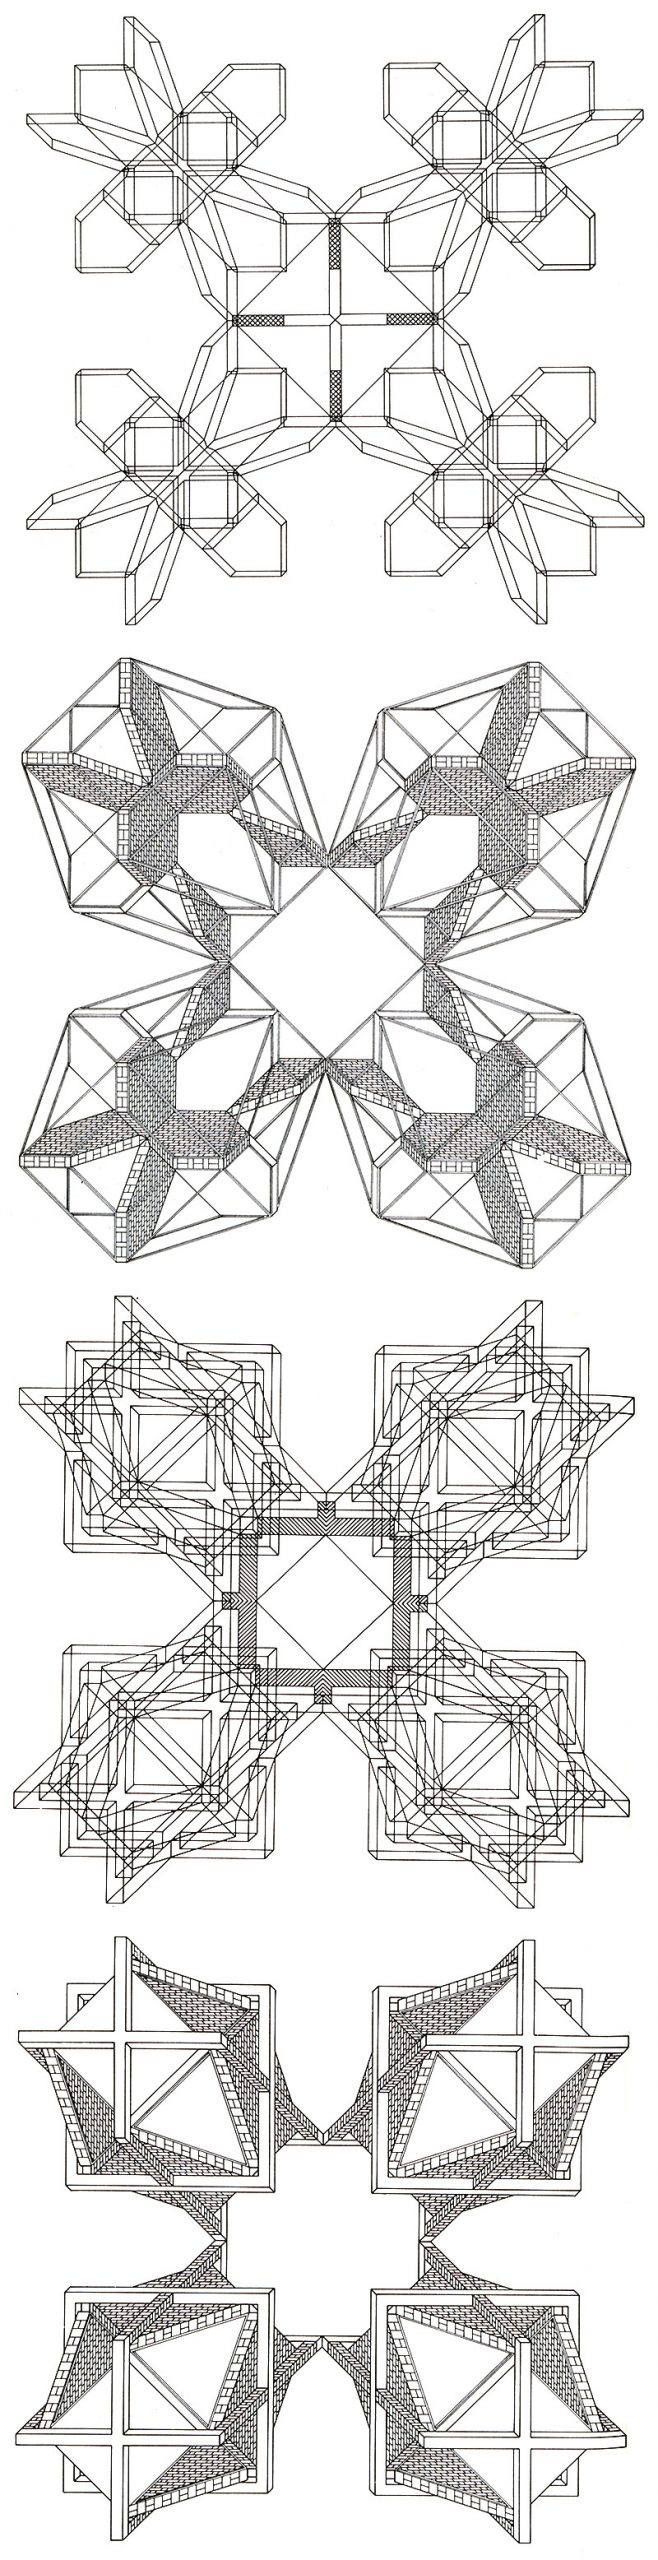 Stanley Tigerman and GL Crabtree Structures Lozenge 1